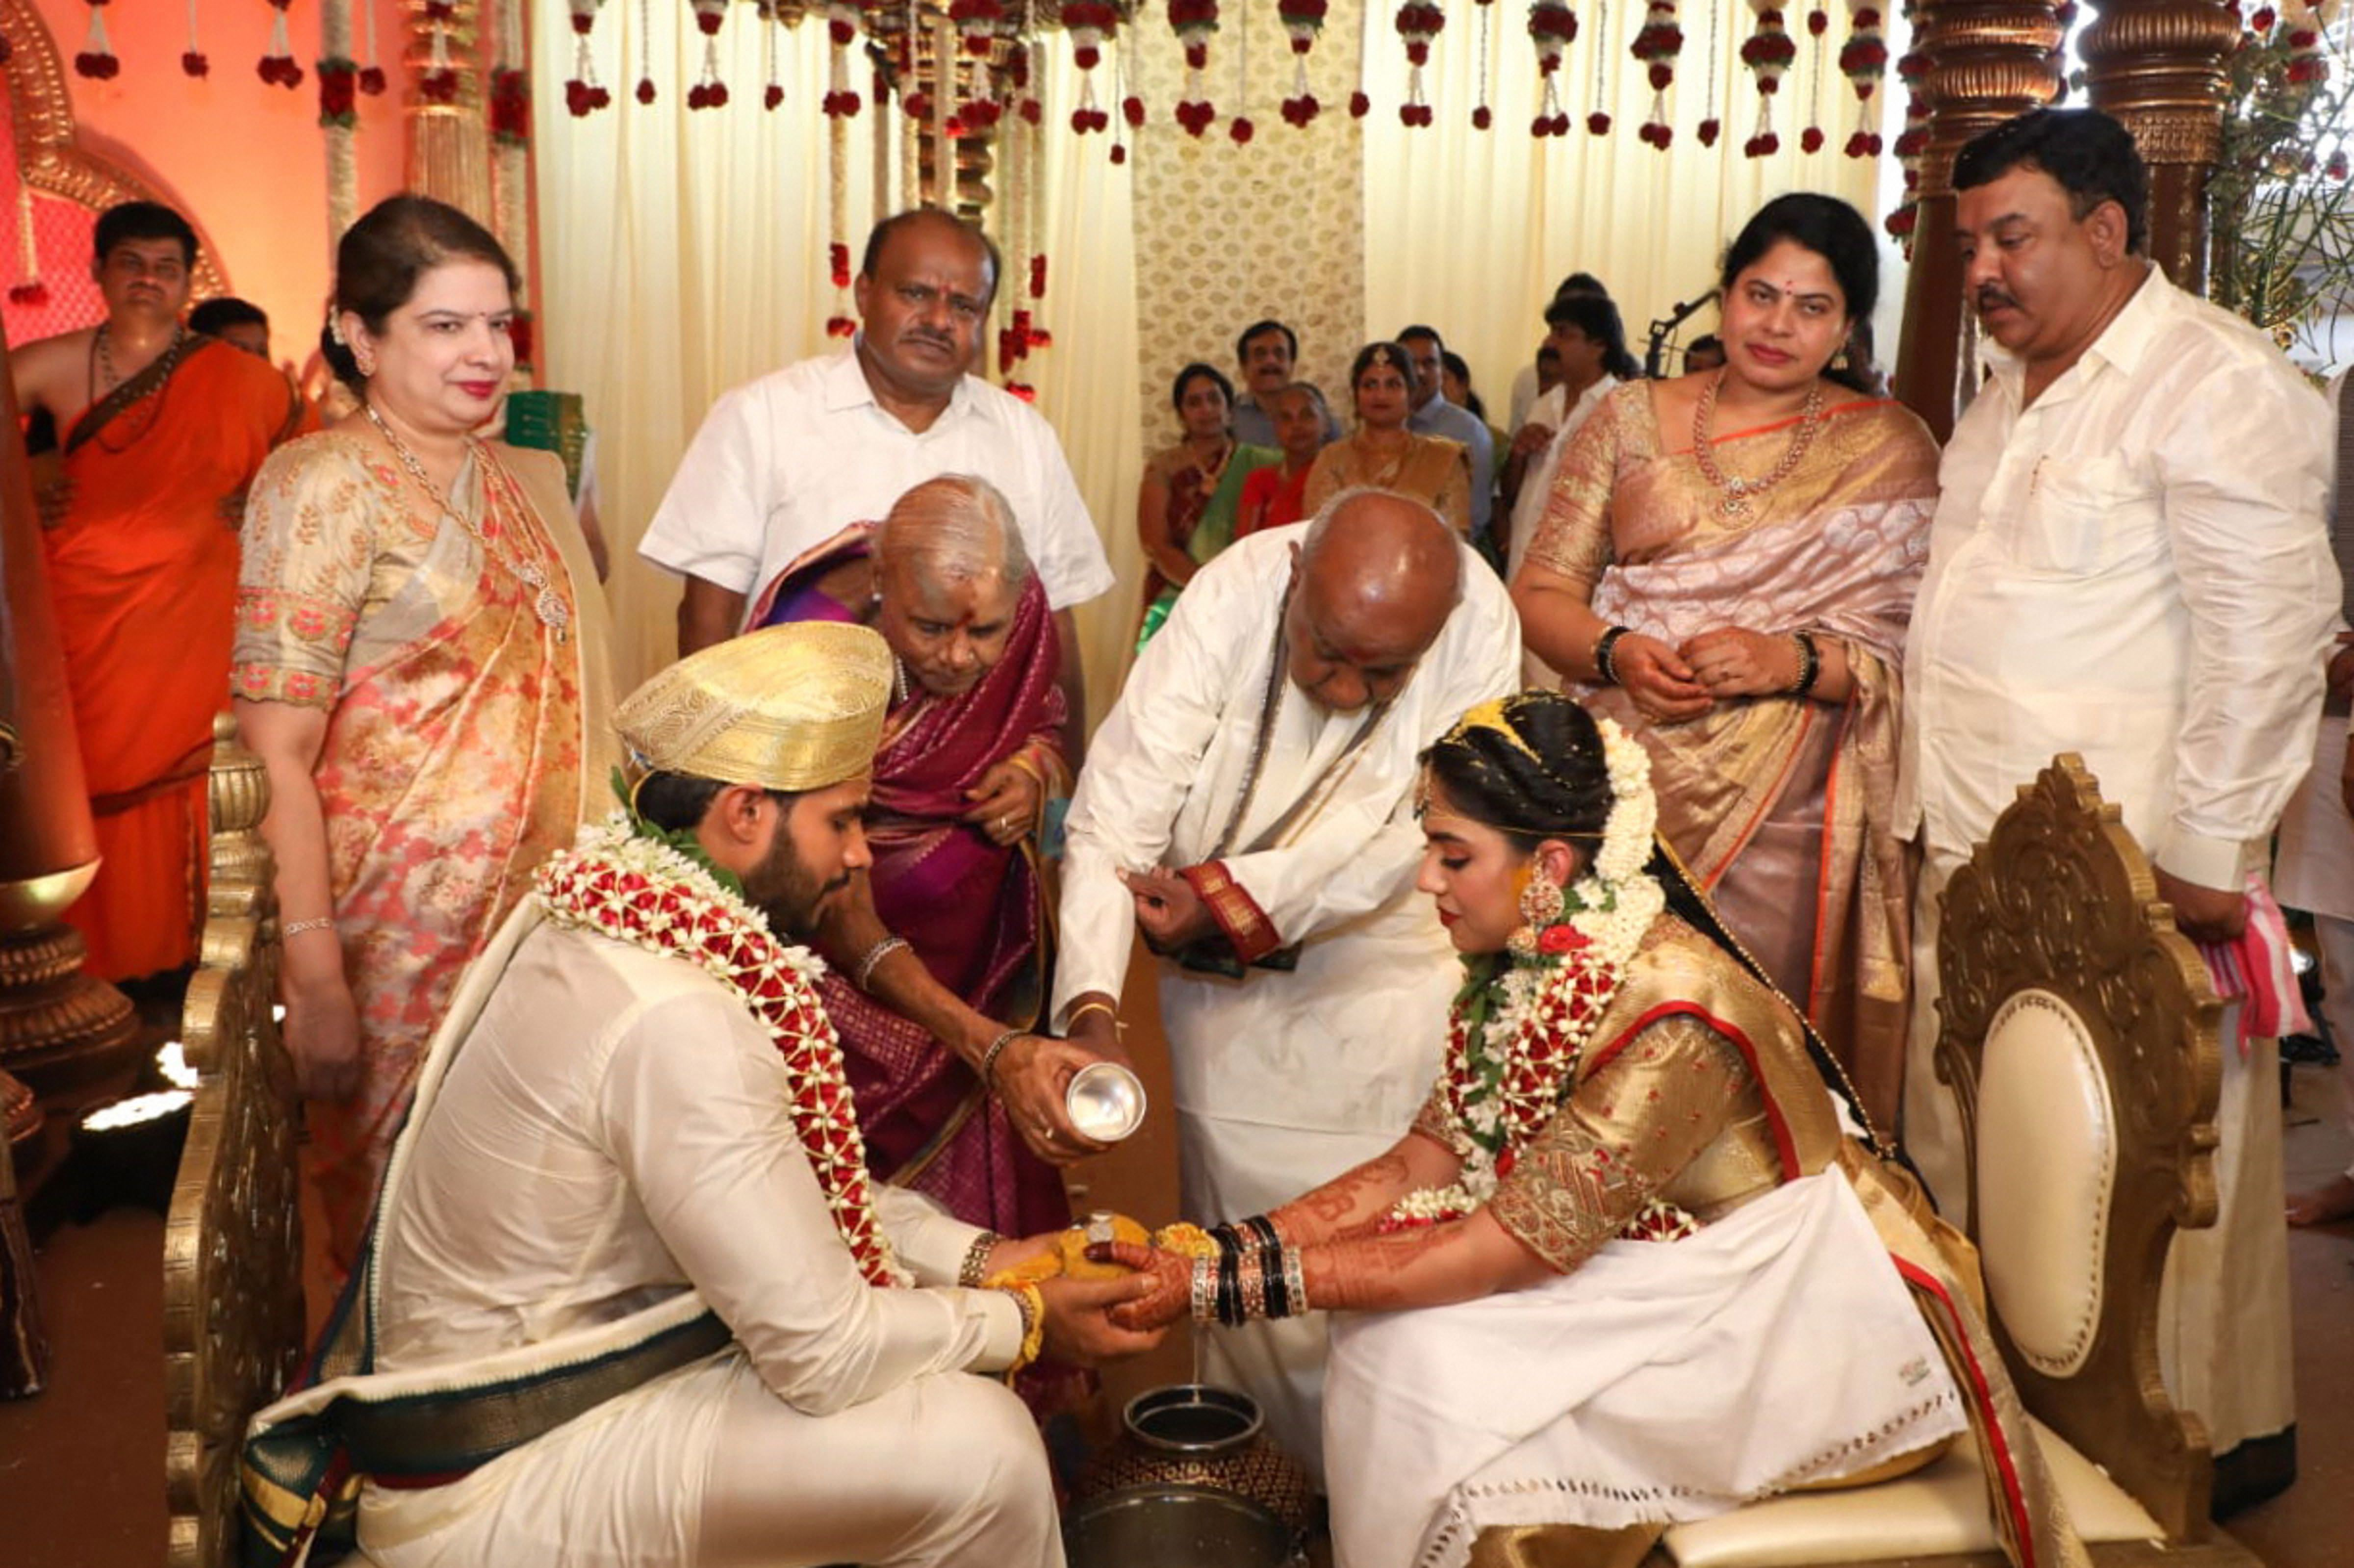 Nikhil Gowda (L), son of former Karnataka chief minister H,D. Kumaraswamy (C) and grandson of former PM H.D. Deve Gowda, ties the knot with Revathi (R), in Bengaluru, Friday, April 17, 2020